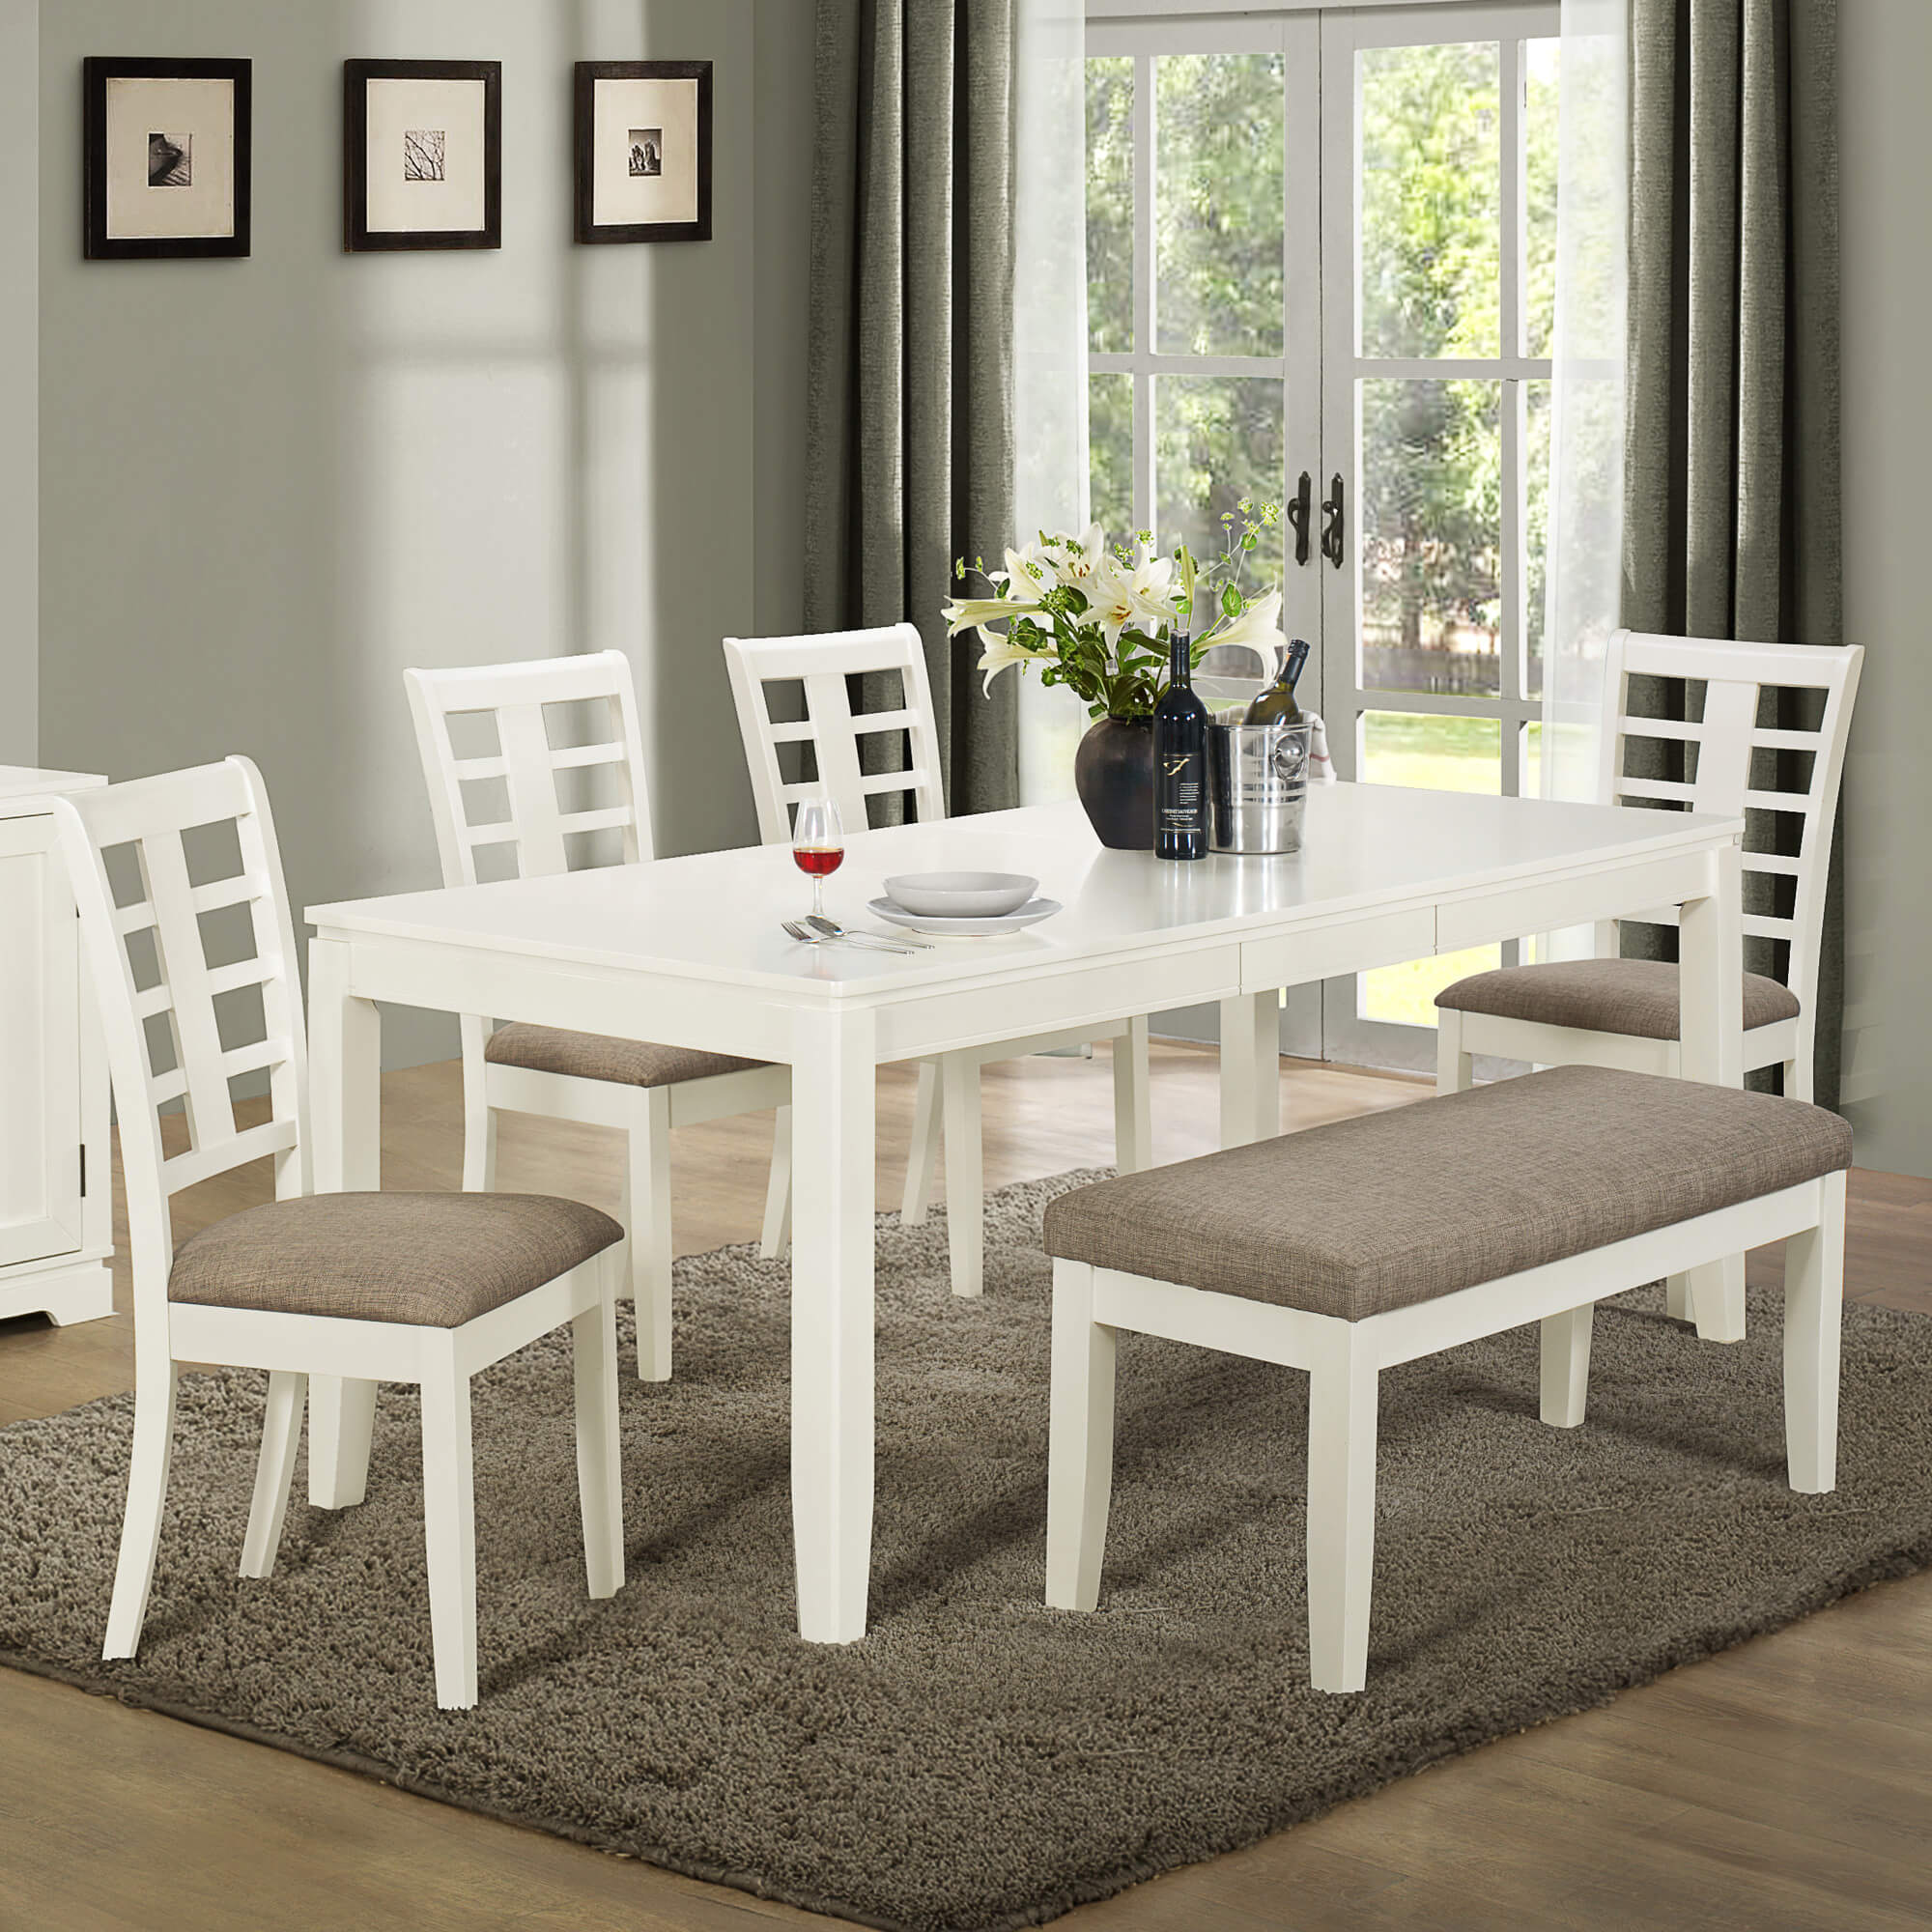 White Wood Kitchen Table Sets 26 Big Small Dining Room Sets With Bench Seating